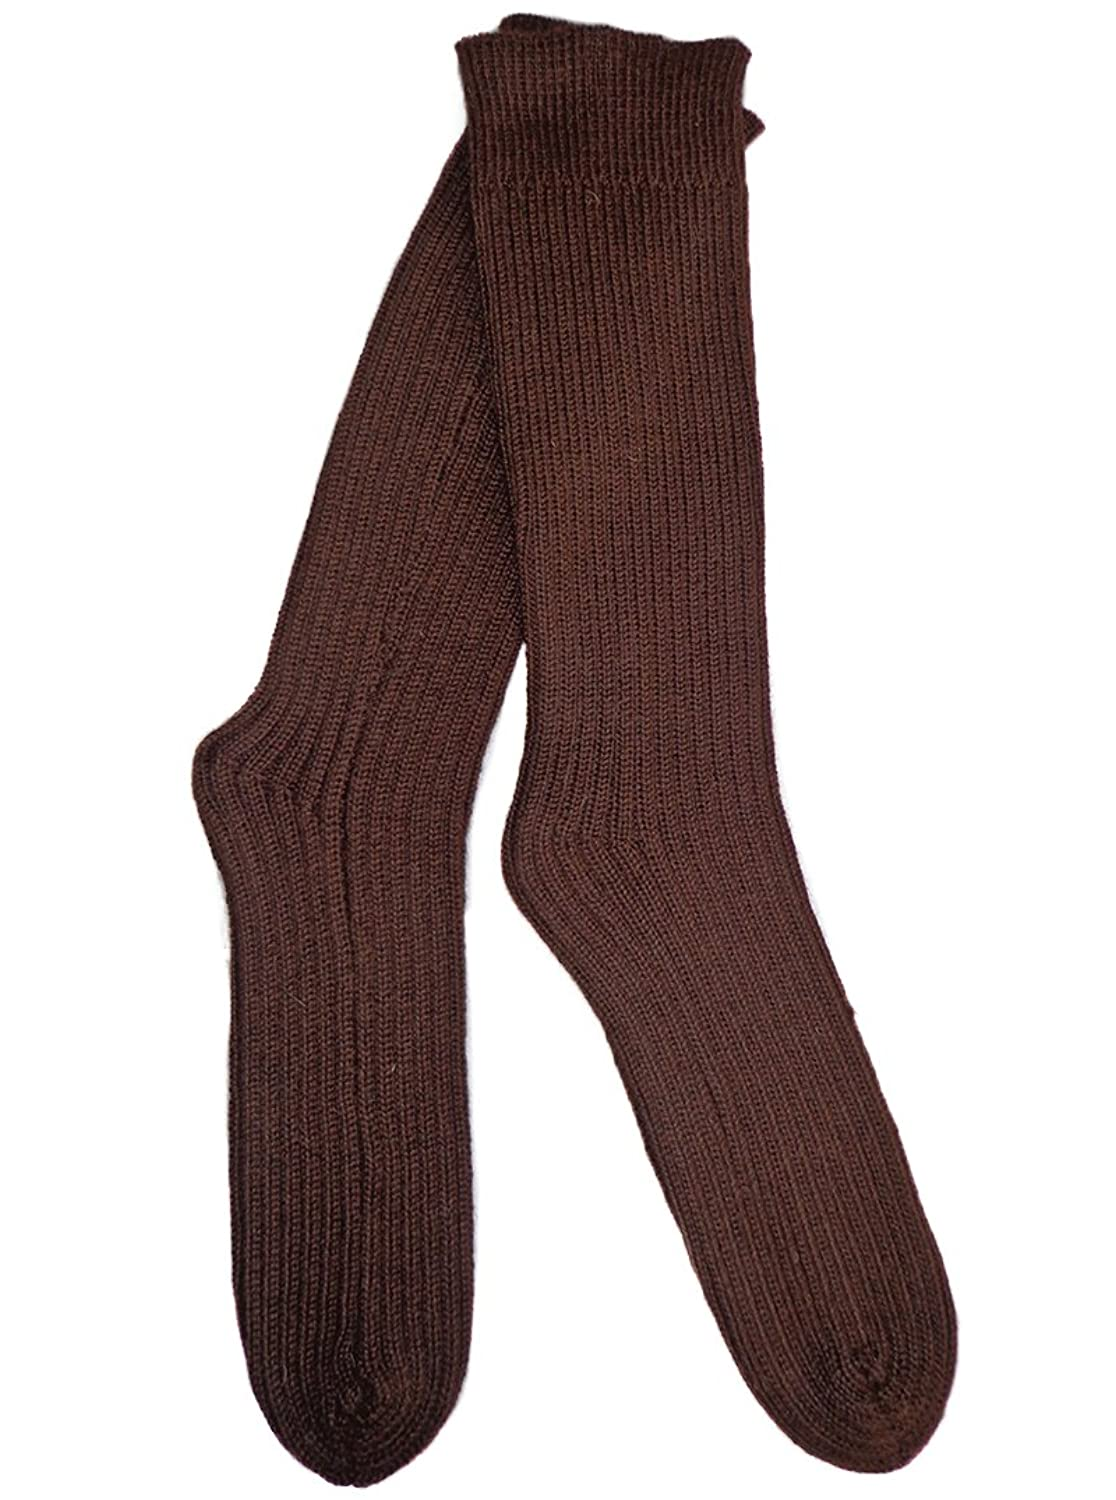 Discount Gamboa Incredibly Warm and Thick 100% Alpaca Wool Long Socks - Smooth Brown supplier